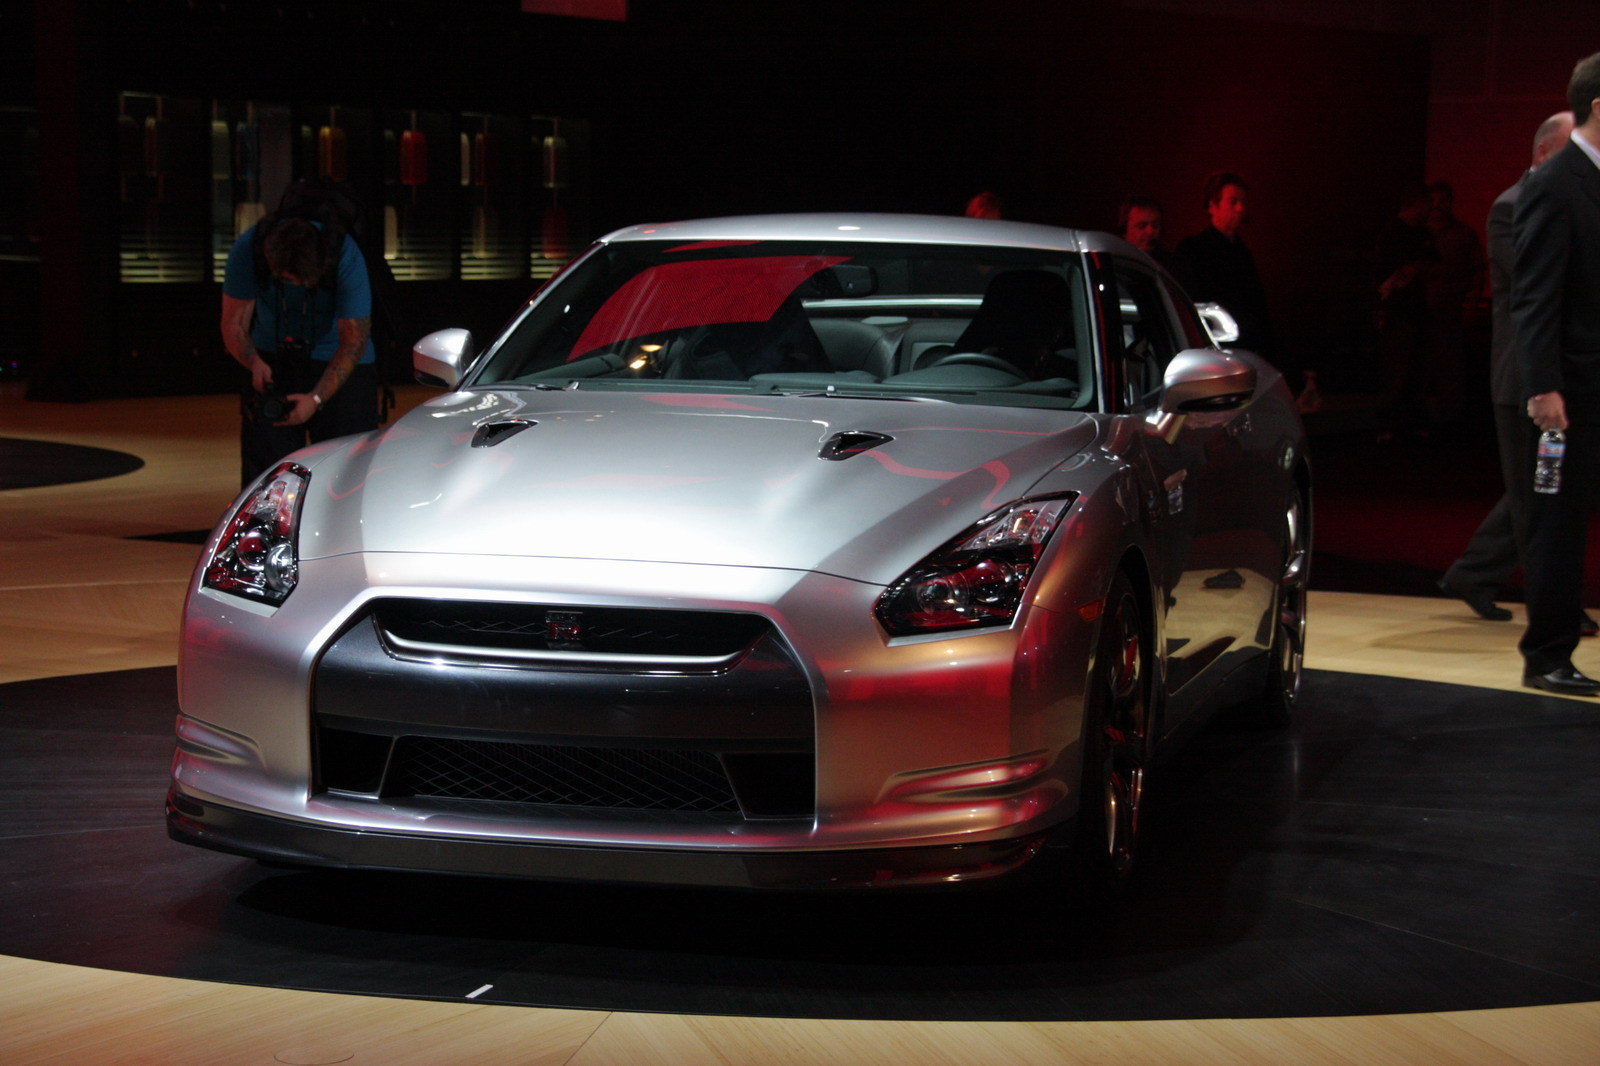 nissan expects 1500 gt r sales a year in usa news top speed. Black Bedroom Furniture Sets. Home Design Ideas